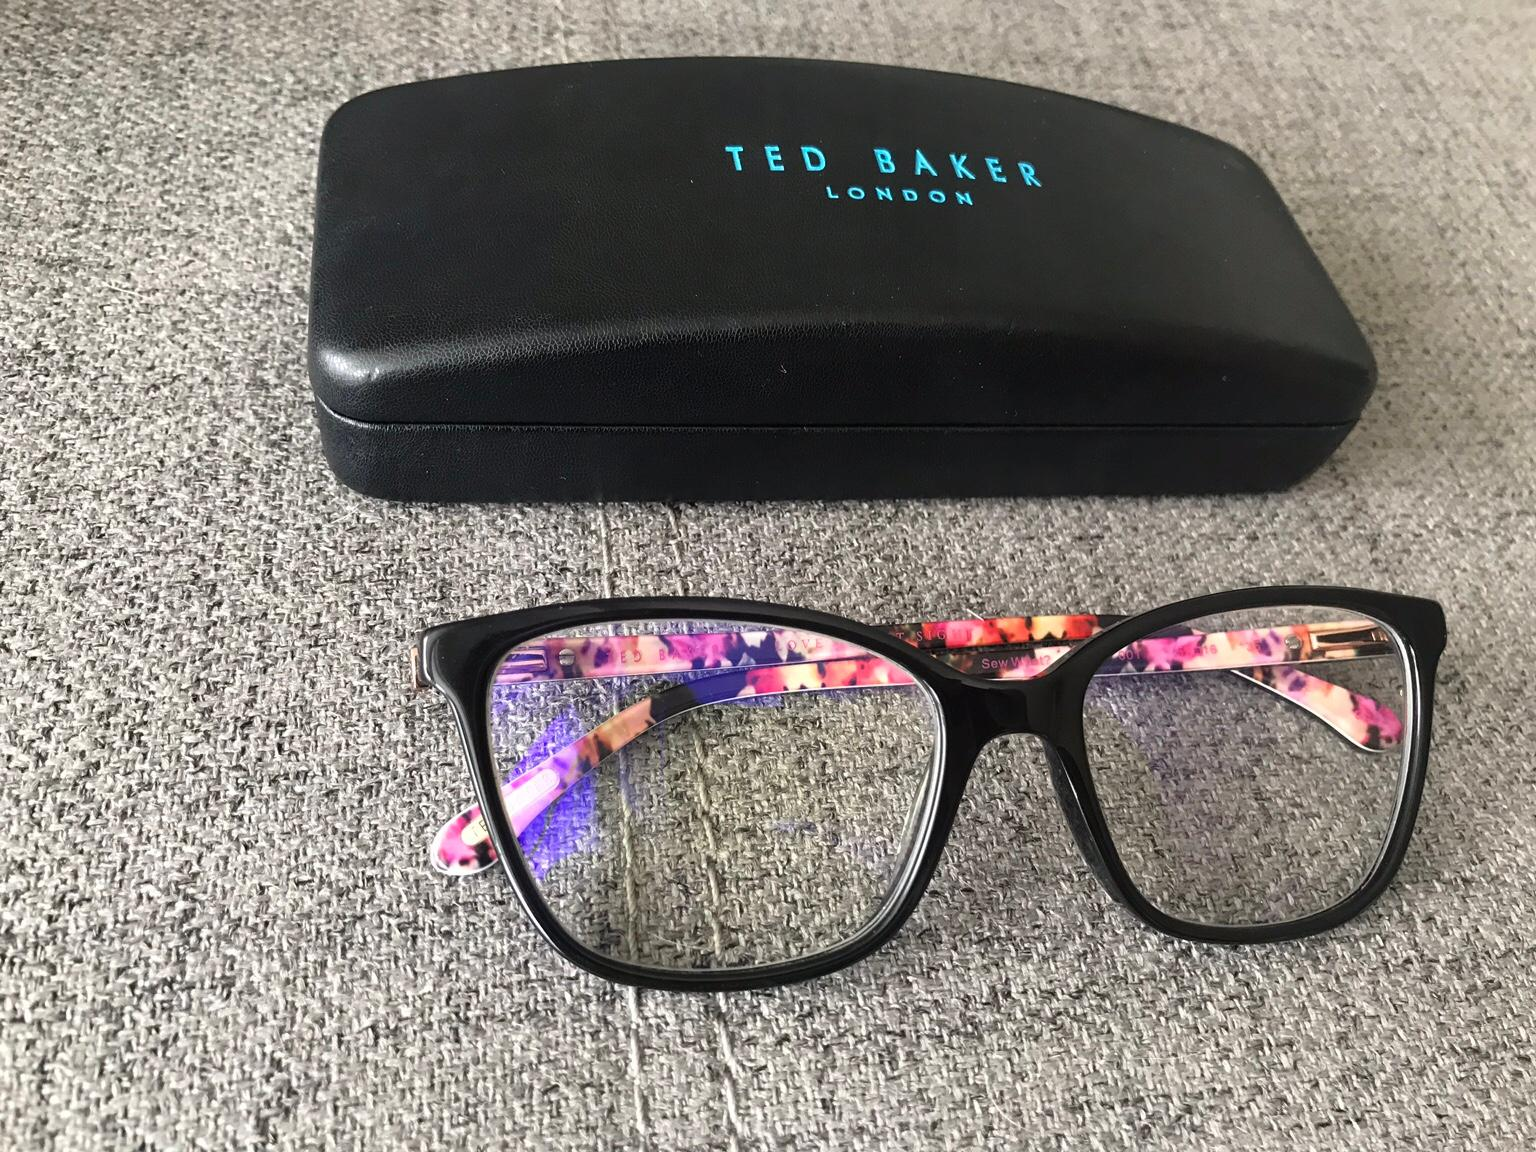 Ted Baker Brille 0 25 Dioptrien In 8020 Graz For 55 00 For Sale Shpock